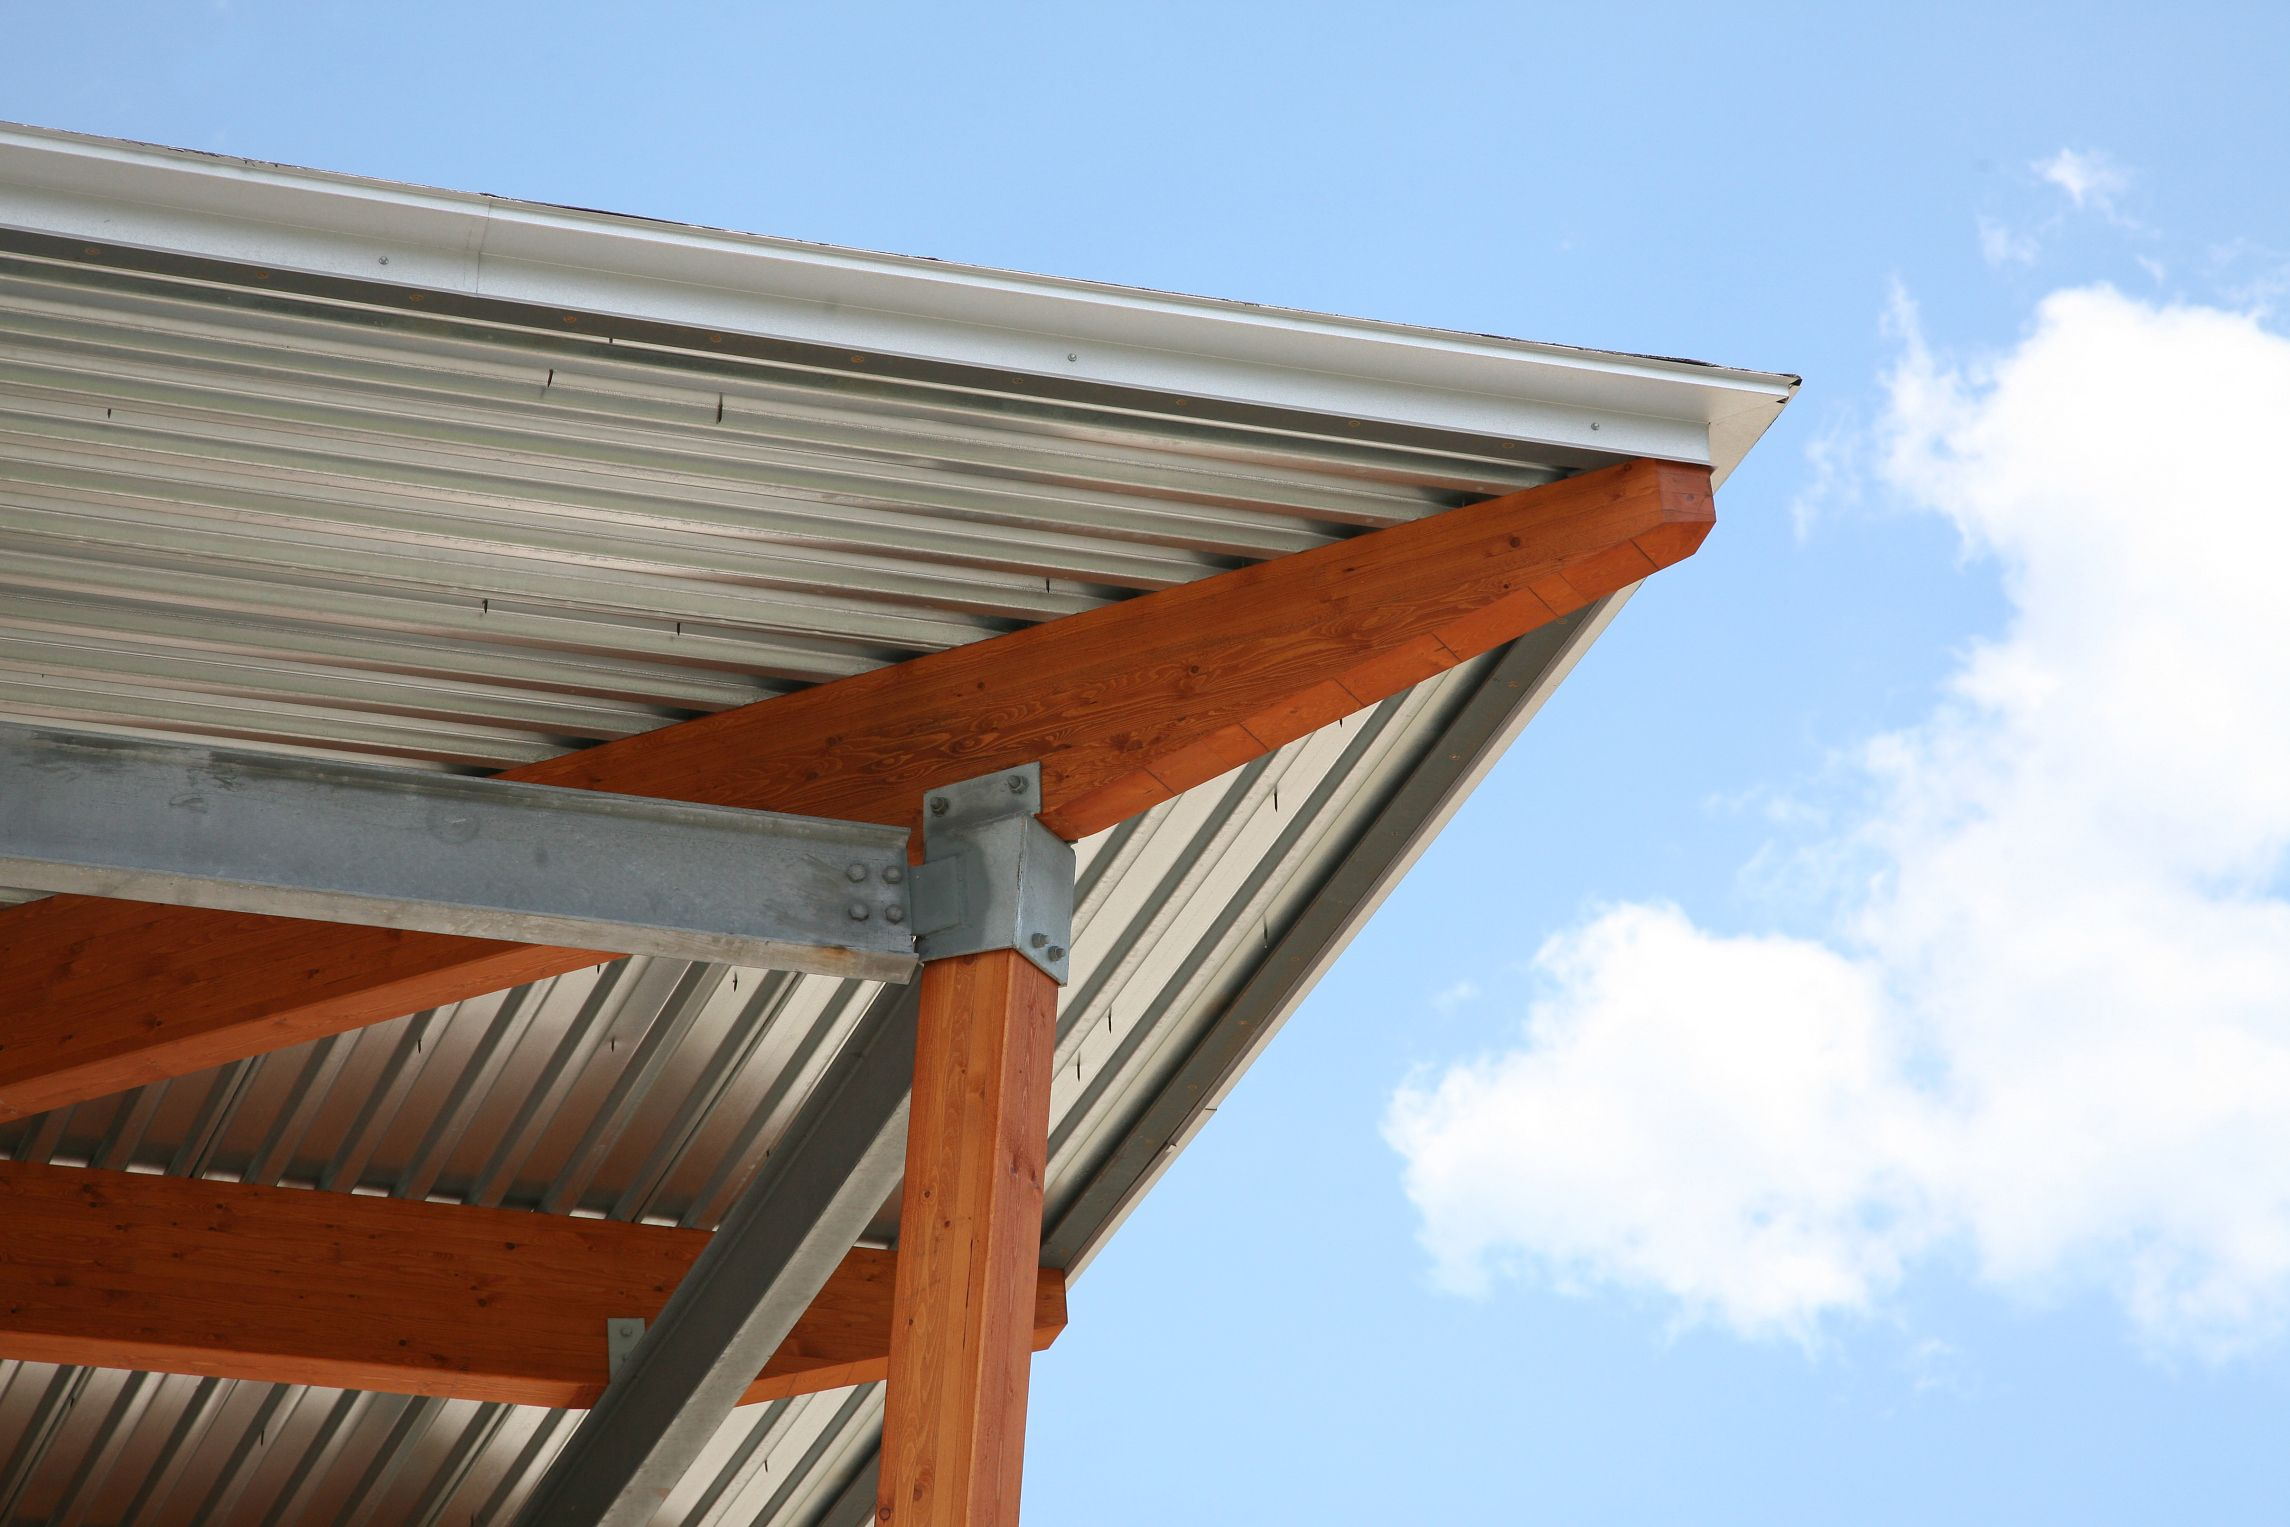 Corrugated Metal Panels Are Ideal For Rainproofing Outdoor Sitting Areas Roof Panels Steel Roofing Metal Roof